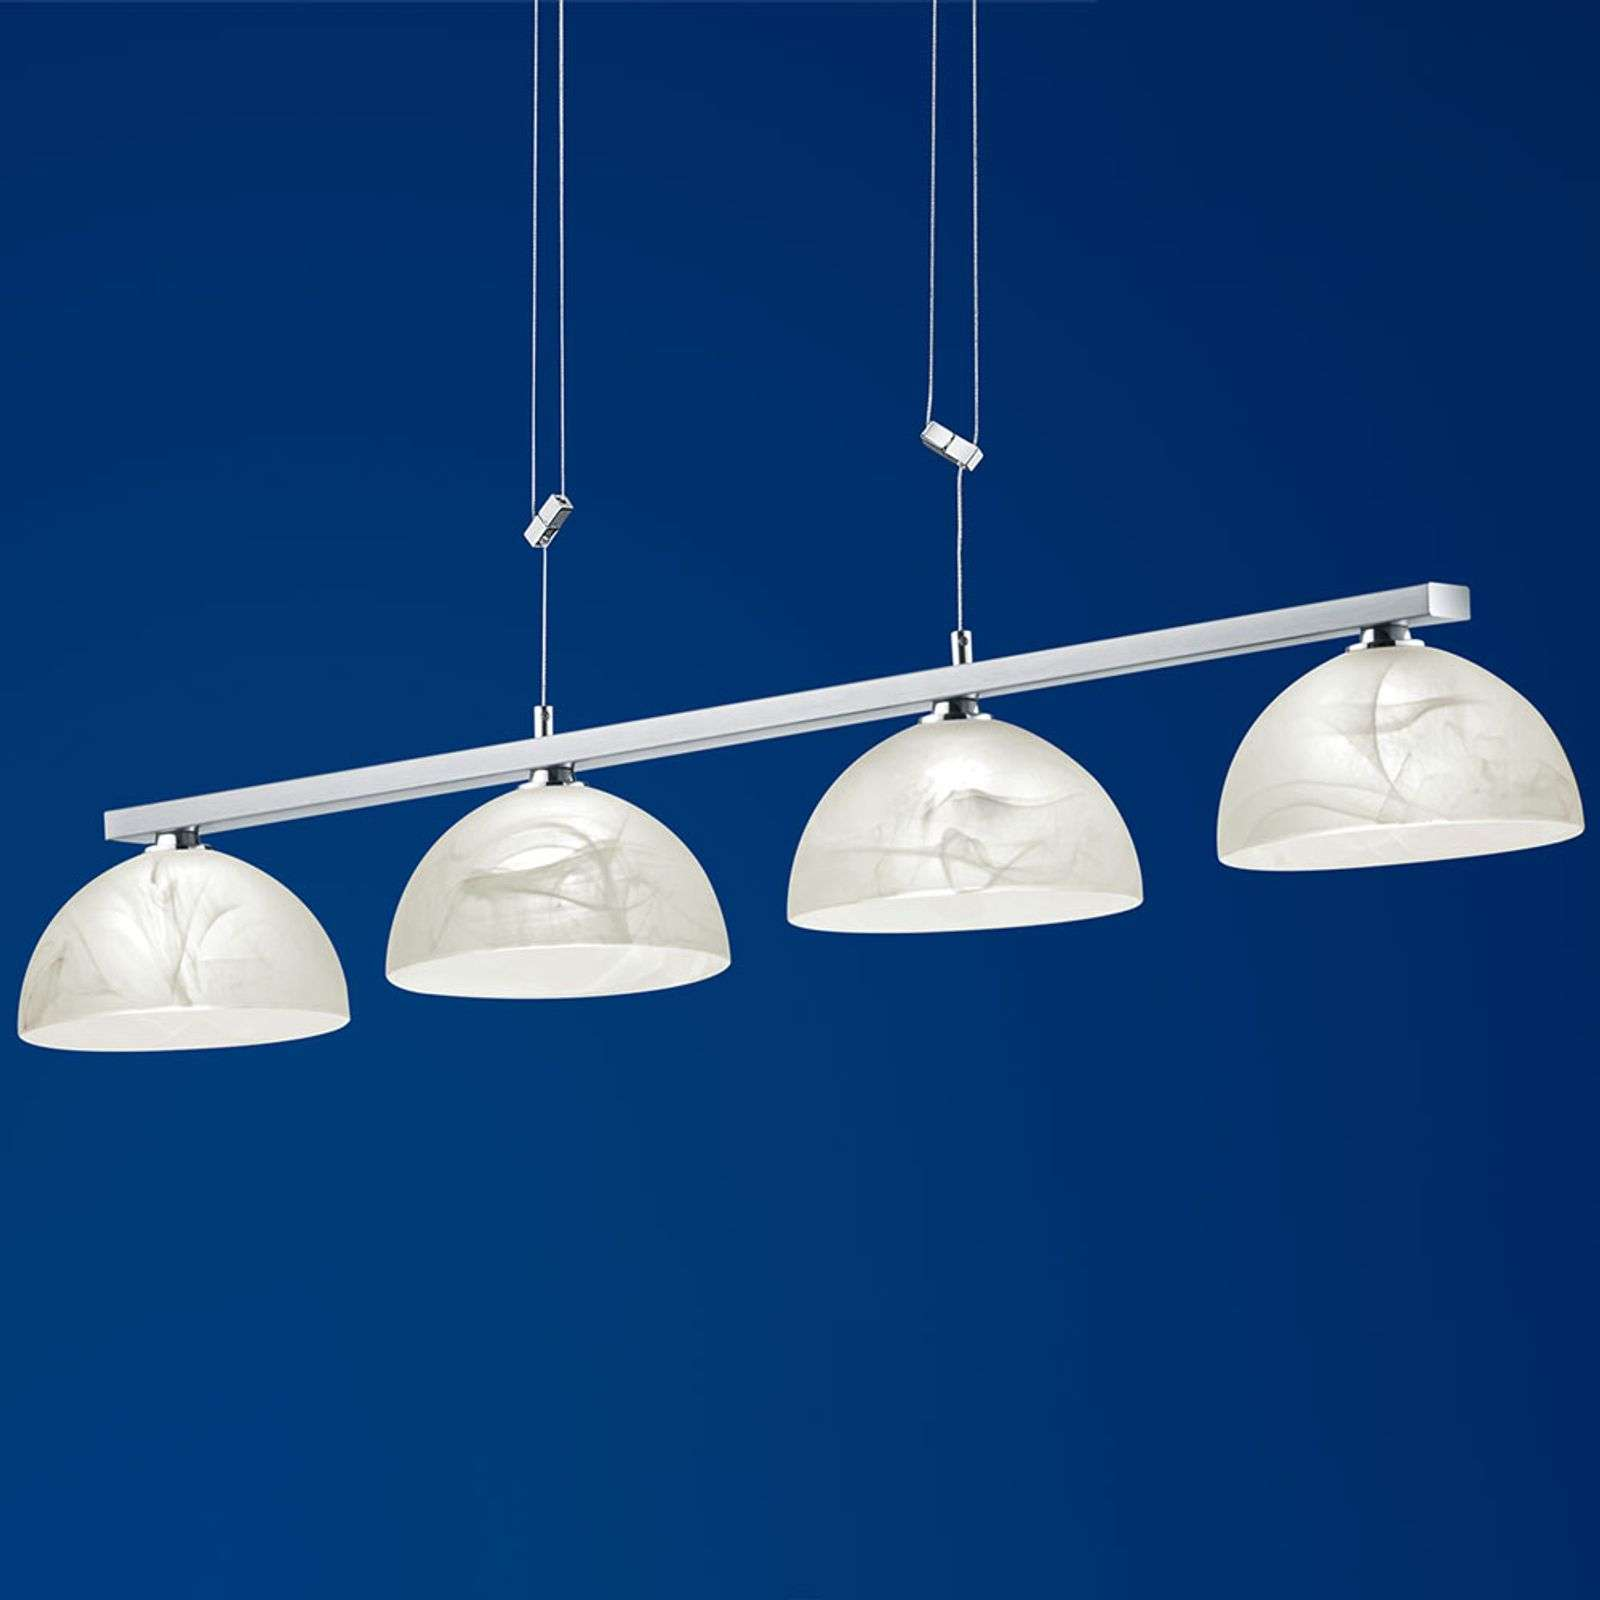 Suspension LED Ebro dimmable, hauteur réglable